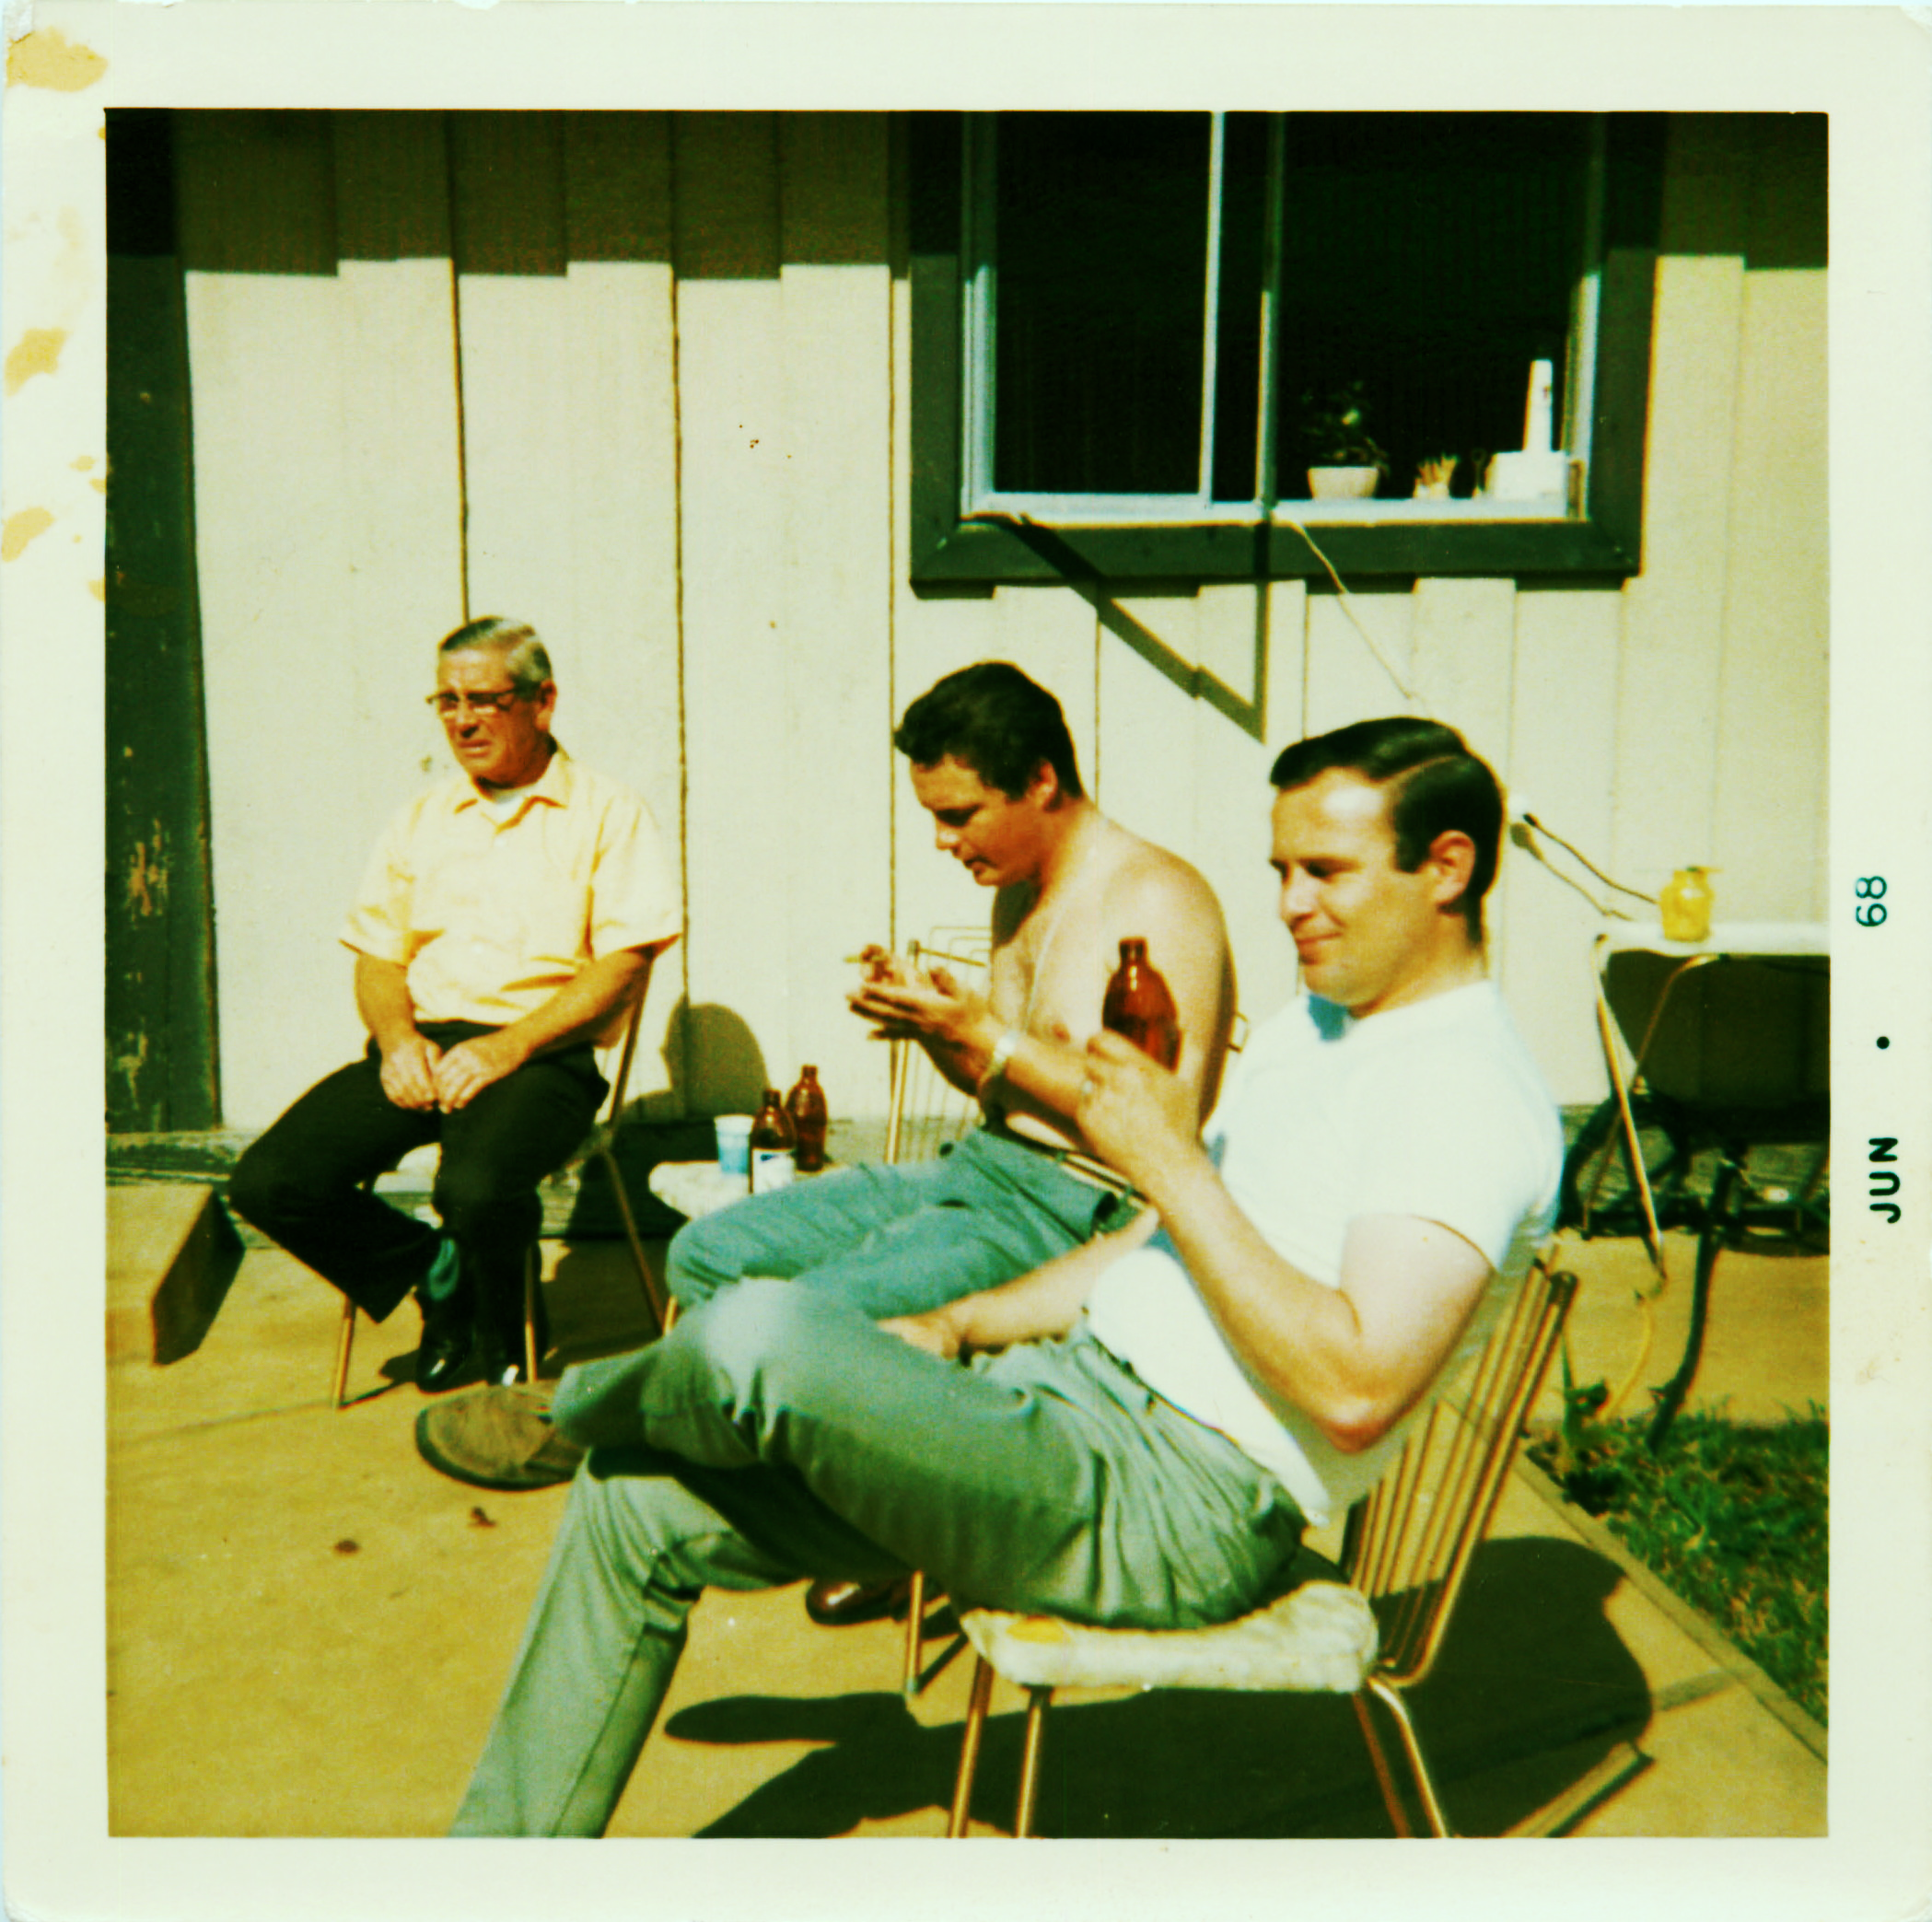 My father (middle) and his cousin Donny (right) outside on a sunny day in Pacifica having a beer with my Grandpa Elmo.